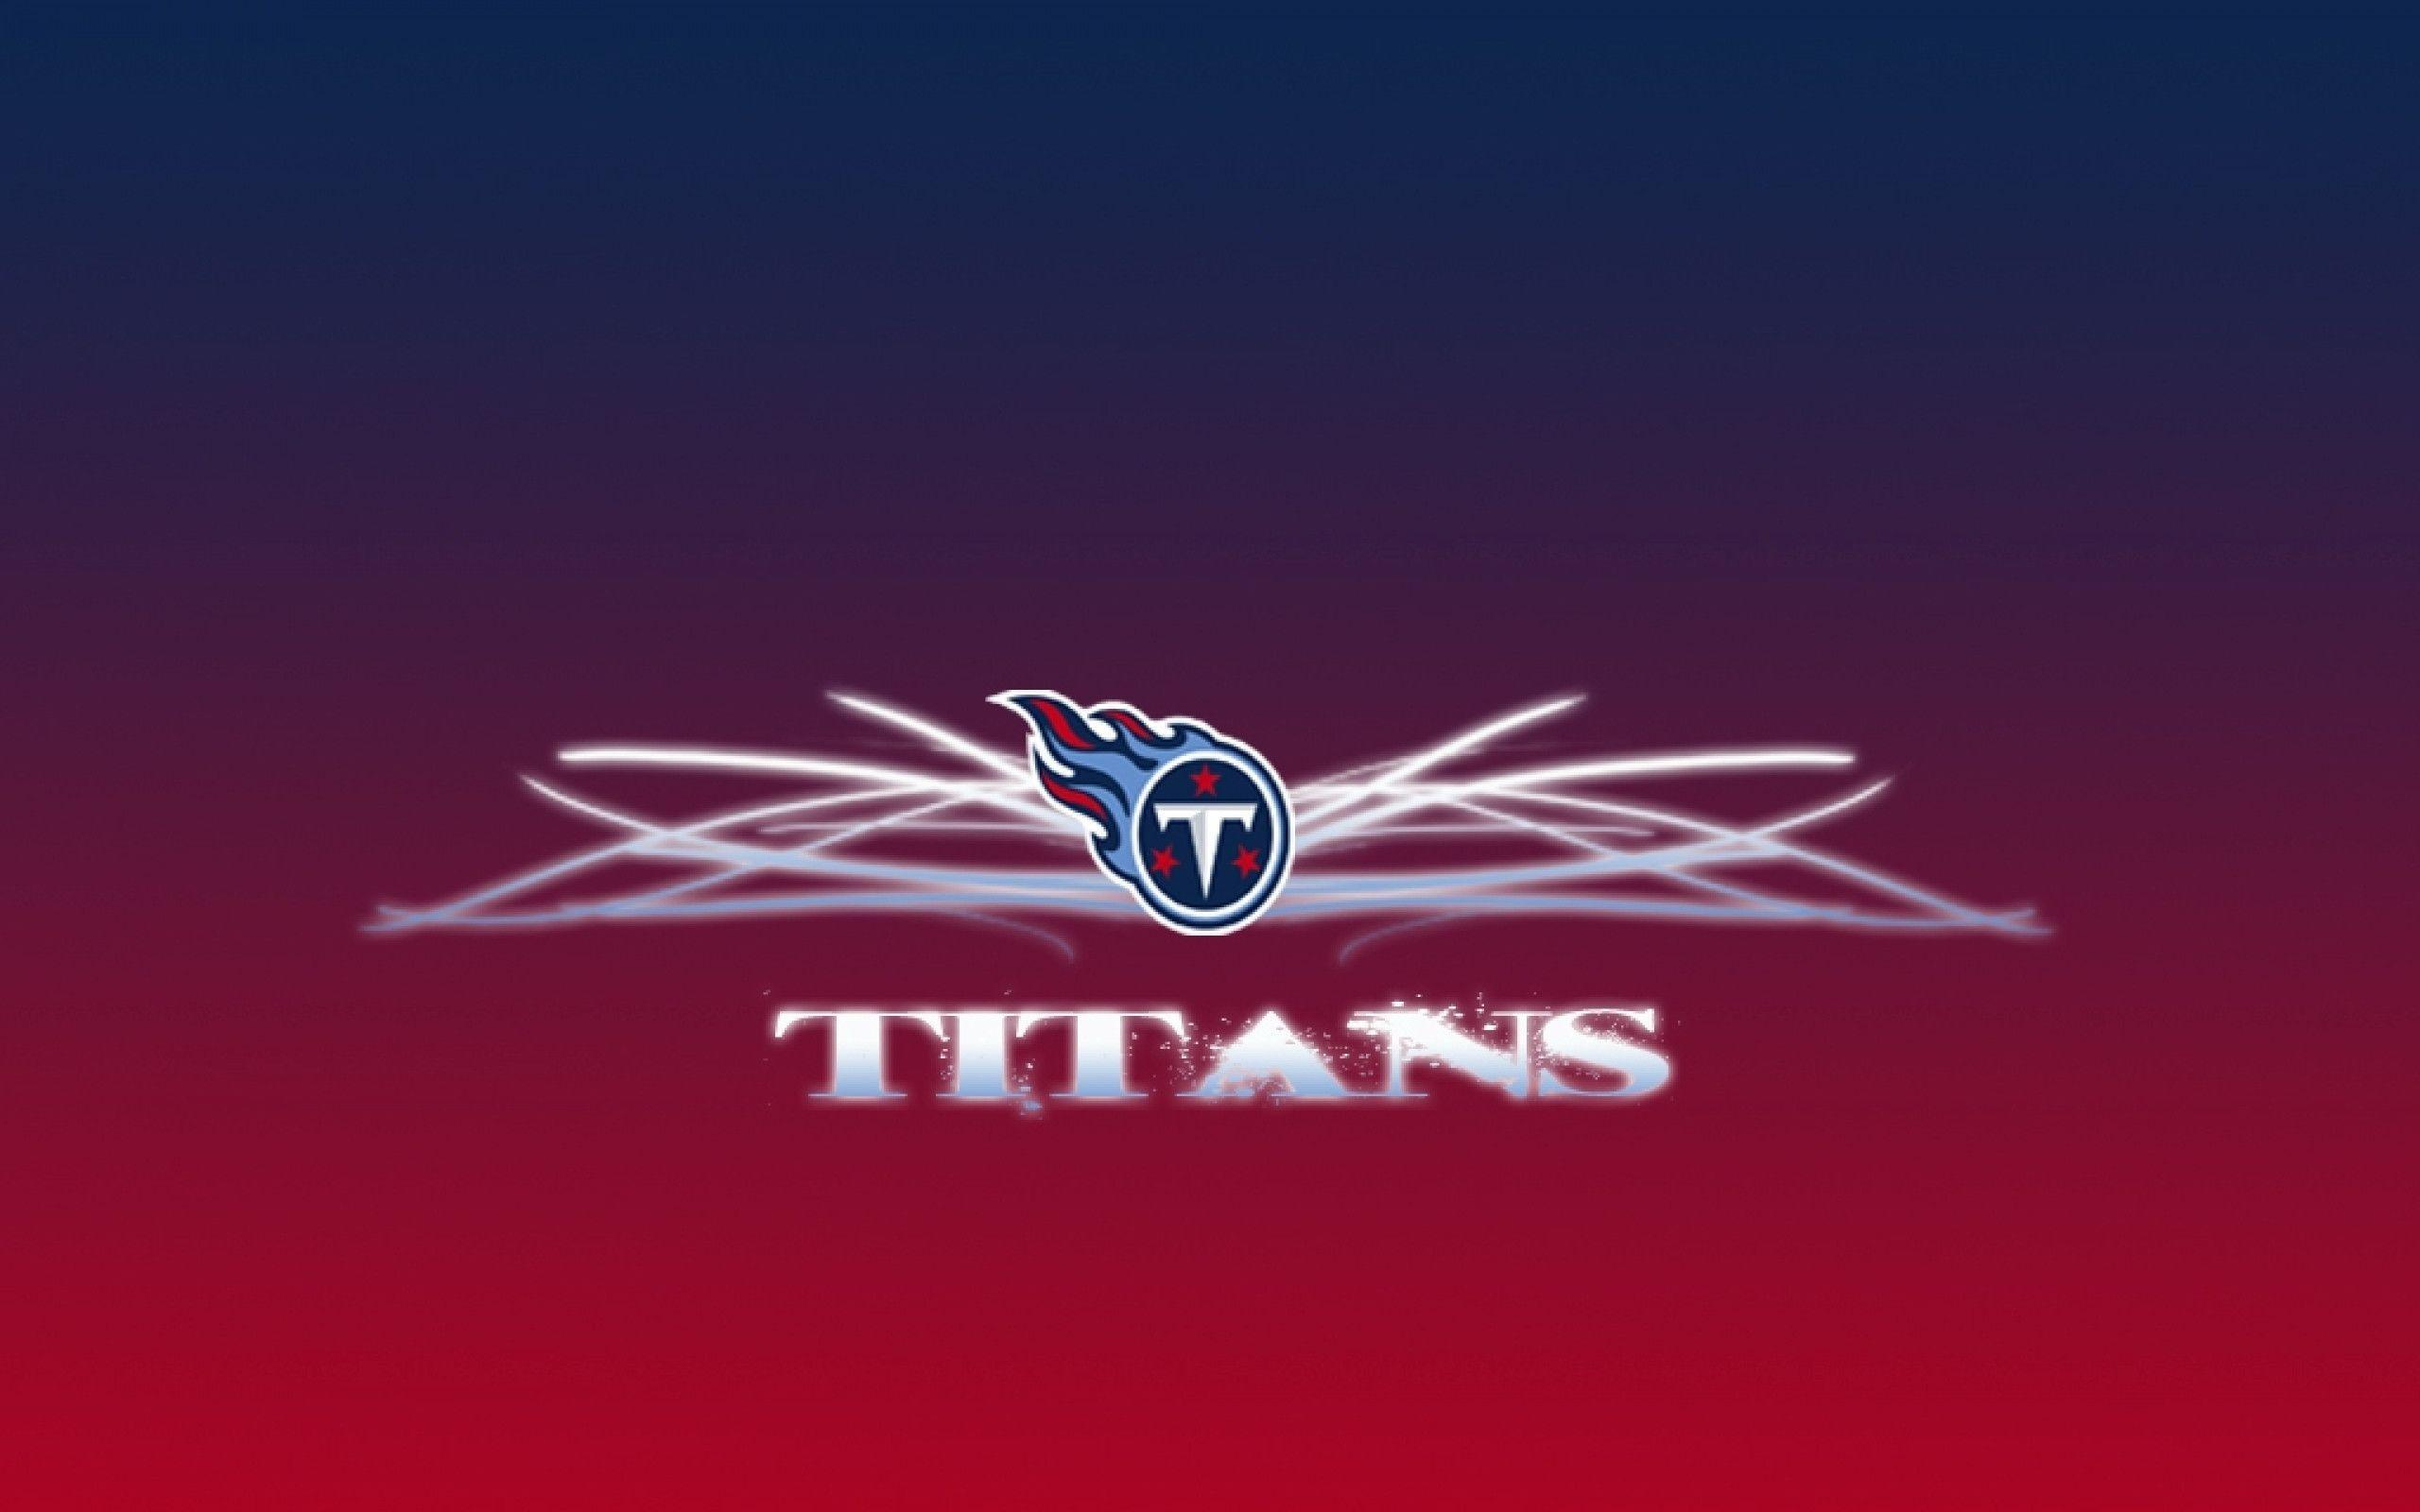 Tennessee Titans 2014 NFL Logo Artwork Wide or HD